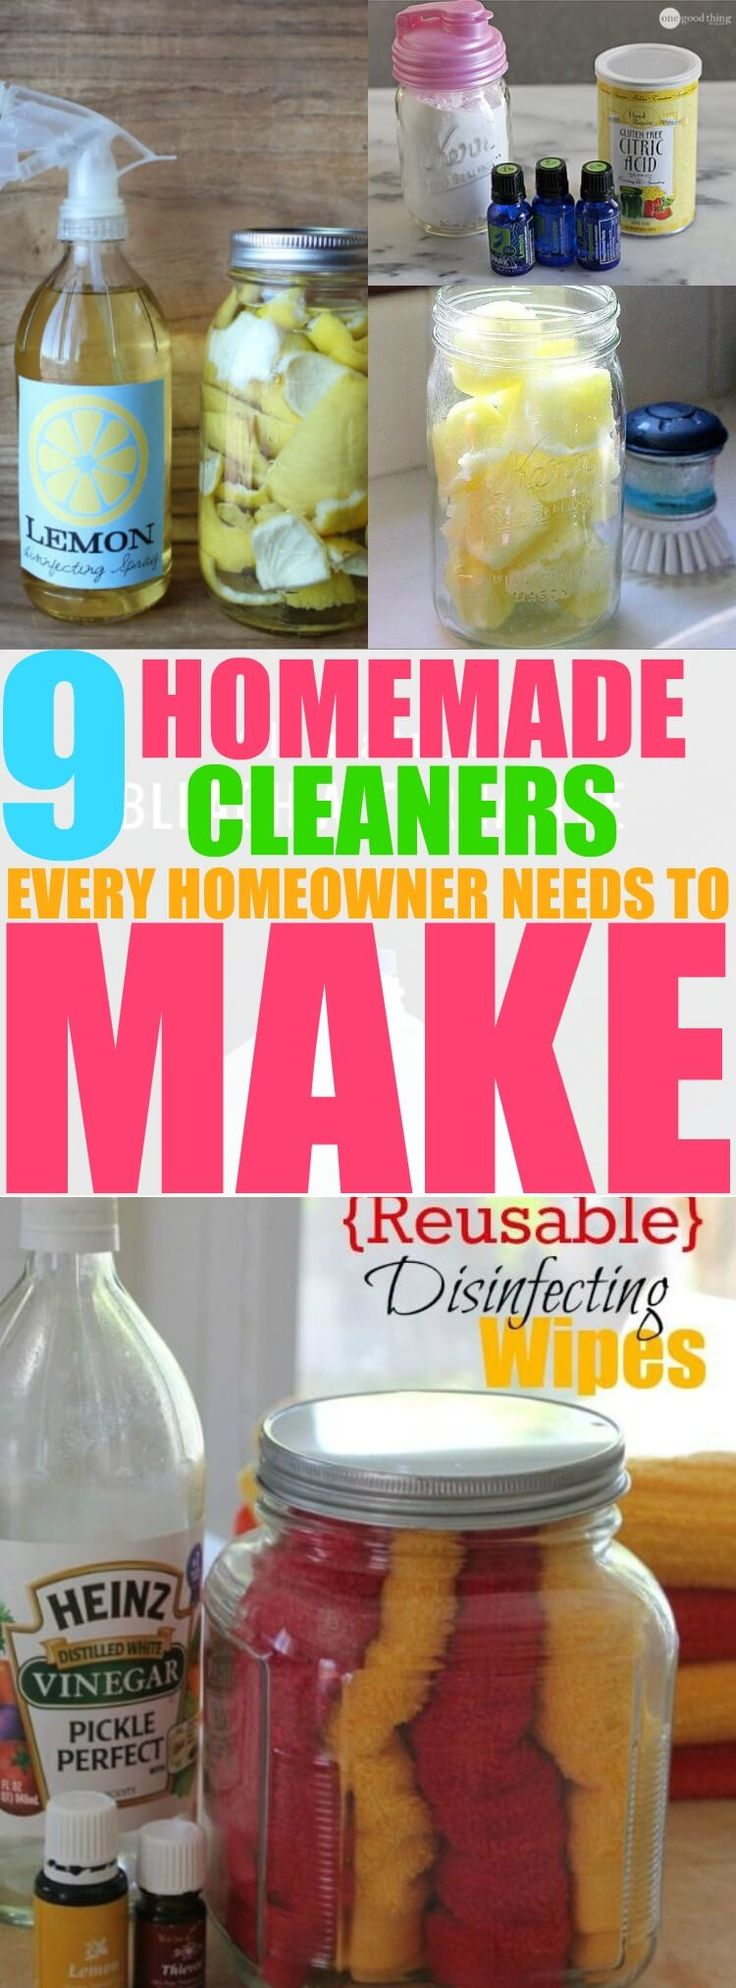 You have to try these homemade cleaners! They are safe and work great!